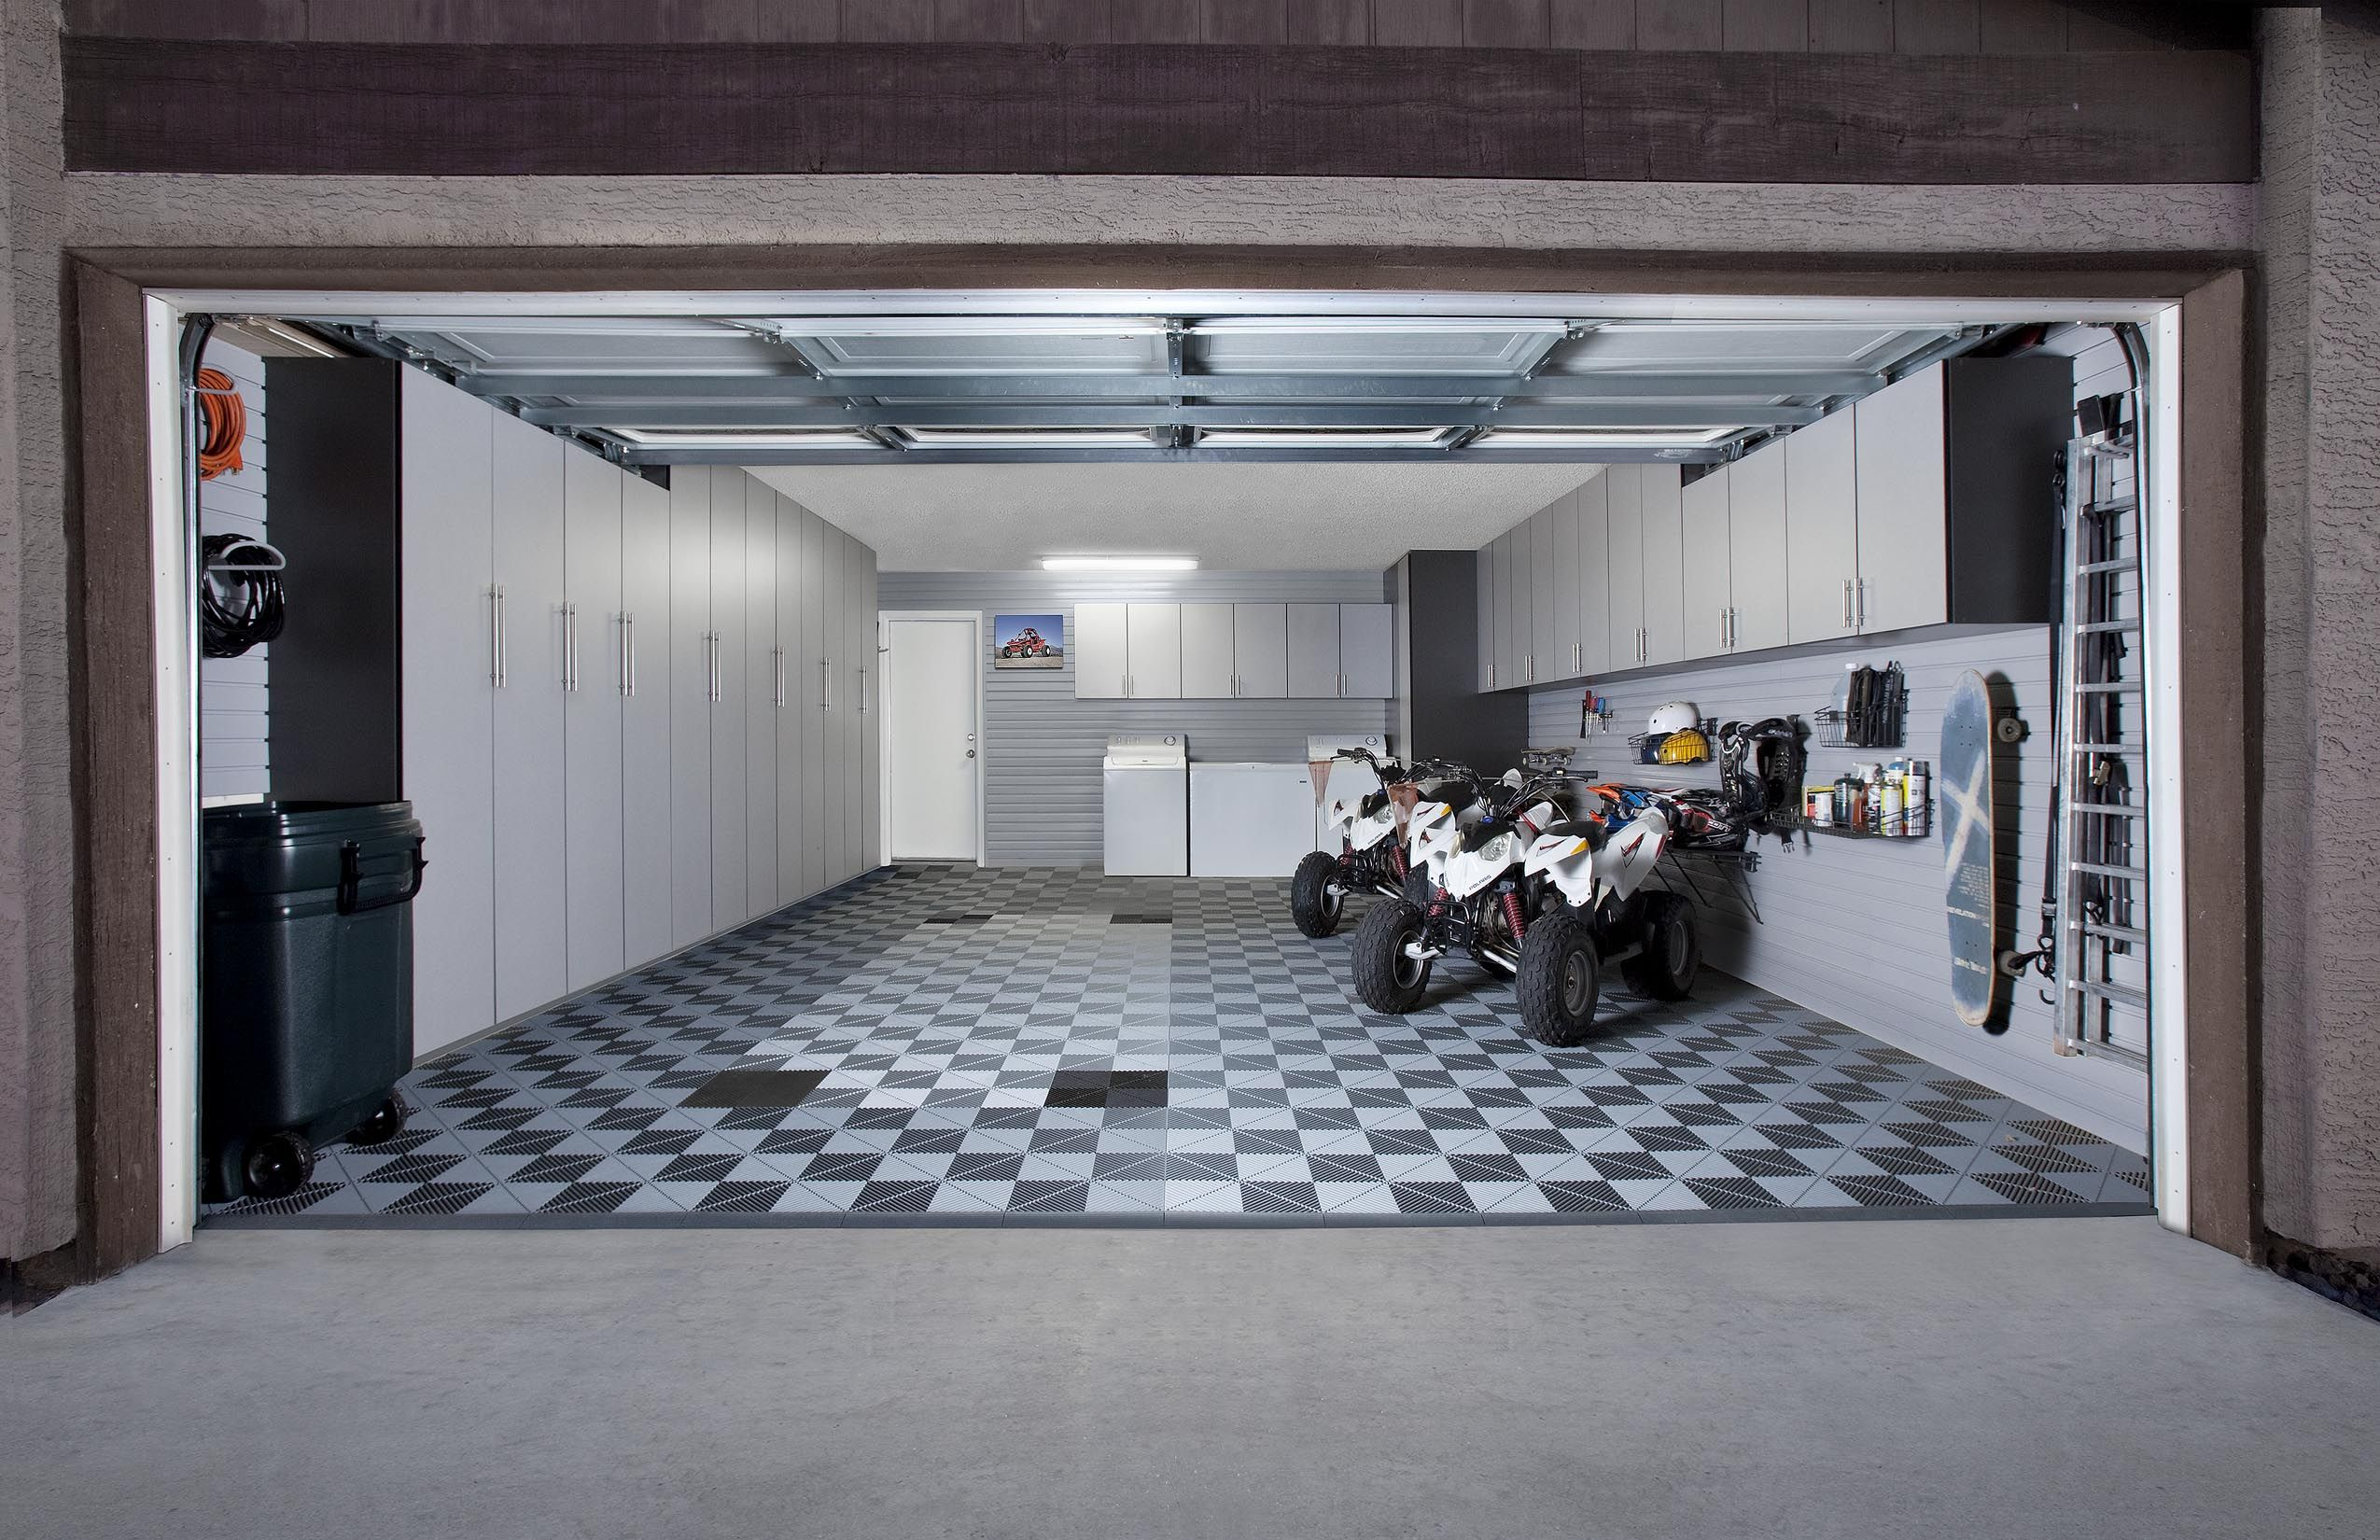 Realtimecampaign Com Communicates Advantages Of Garage Flooring